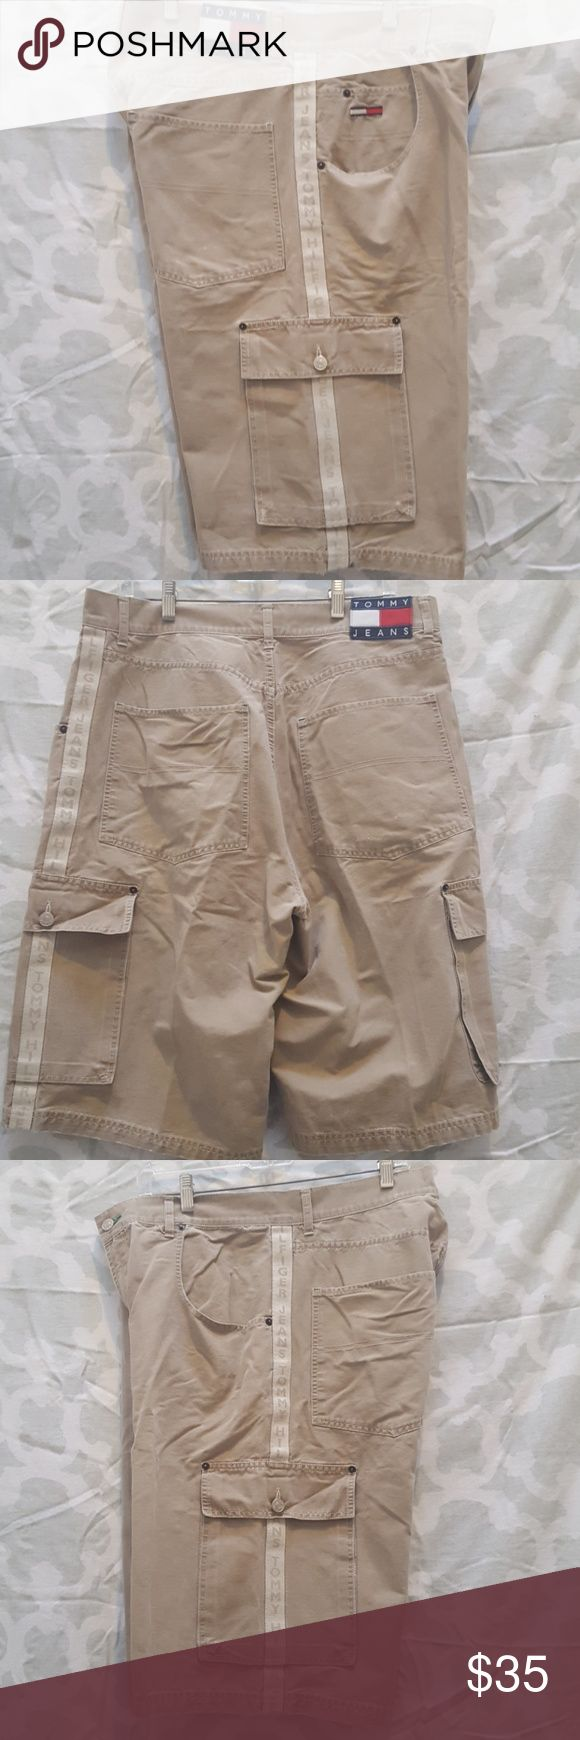 VINTAGE 1999 Tommy Hilfiger cargo shorts For sale is a used pair of Vintage Mens Tommy Hilfiger Tommy Jeans Khaki colored demim cargo shorts.  Production date: 12/1999  They are a mens waist size 36  Shorts are in good condition for its age just normal wear from wash. Minor flaws noted. Small surface scratches on back pocket. Please see last picture. May have if any loose threads. Great piece to own! Be sure to pick this up today!  Offers welcomed using offer button.   NO TRADES.  NO…